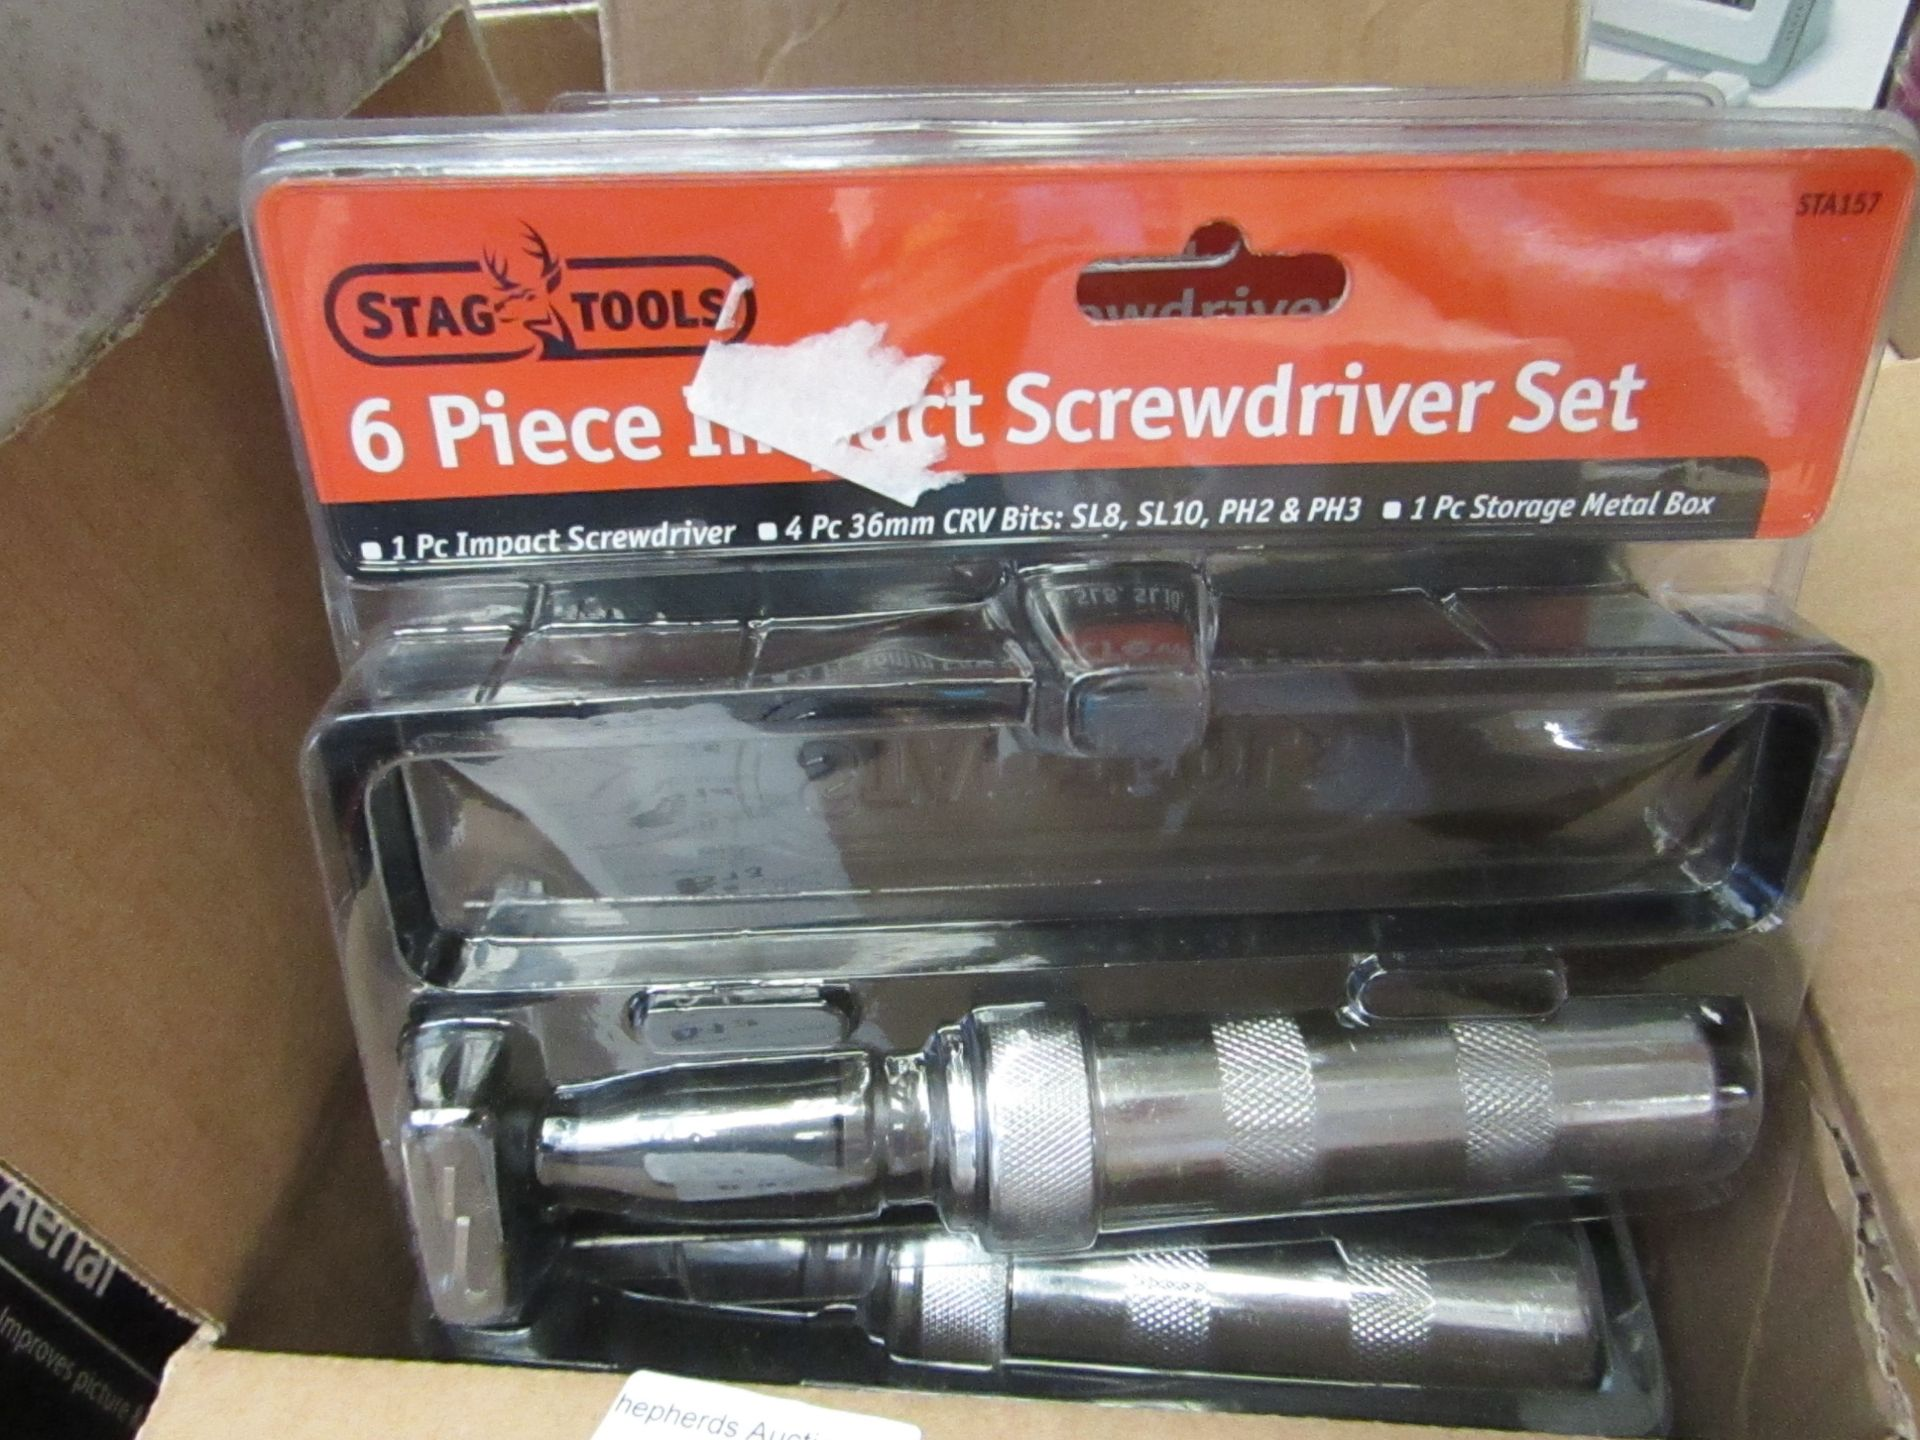 Lot 616 - Stag tools 6 Piece Impact Screwdriver Set. New & Packaged